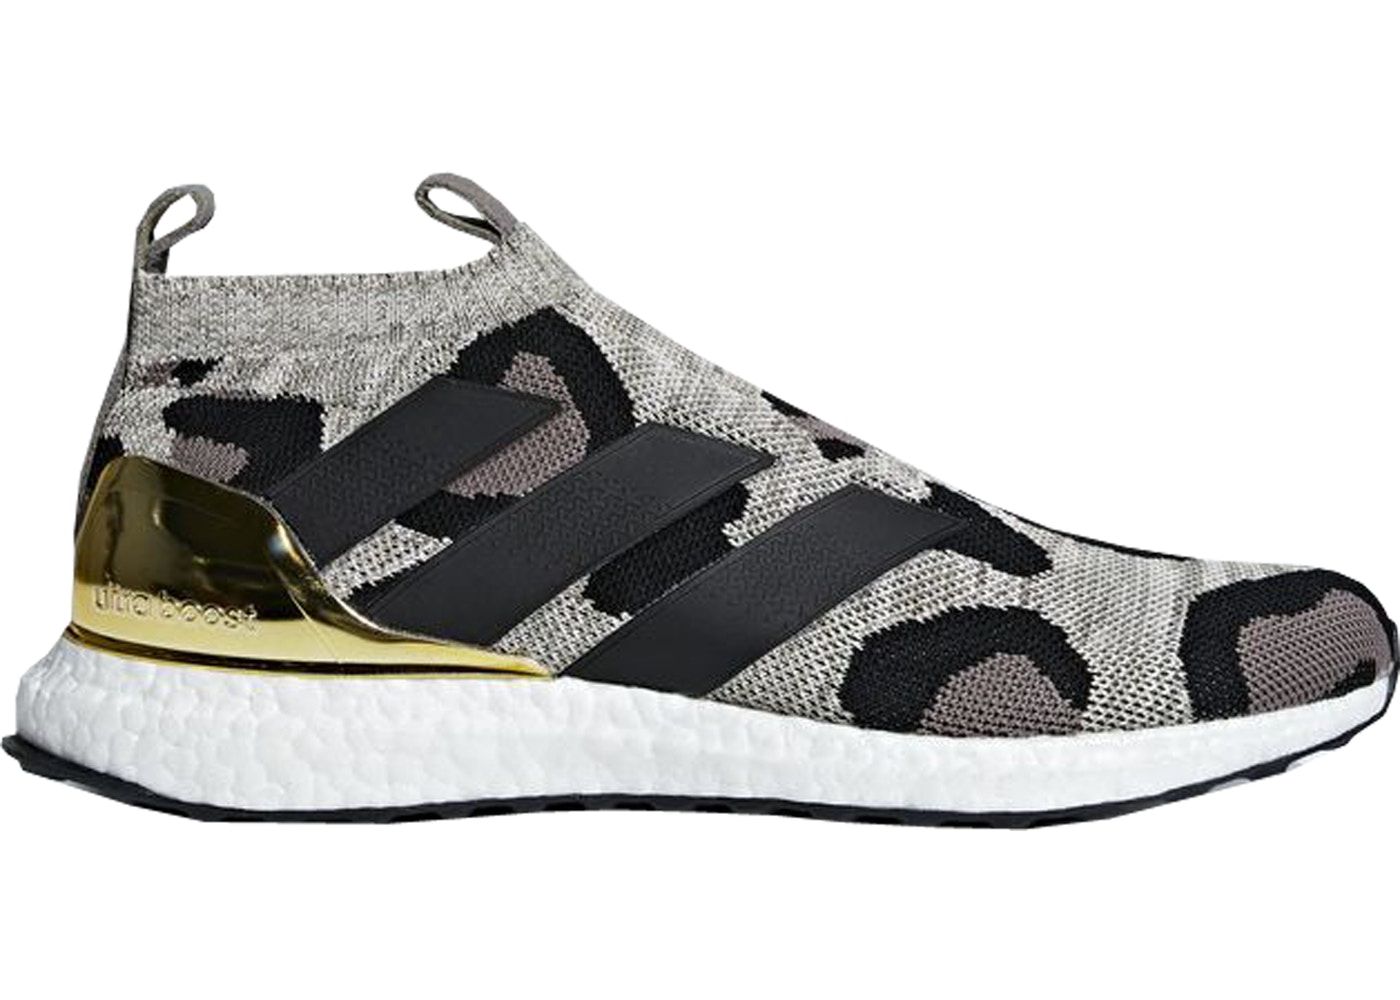 official photos 3fc79 ae145 Adidas Ace 16+ Ultraboost Animal Print